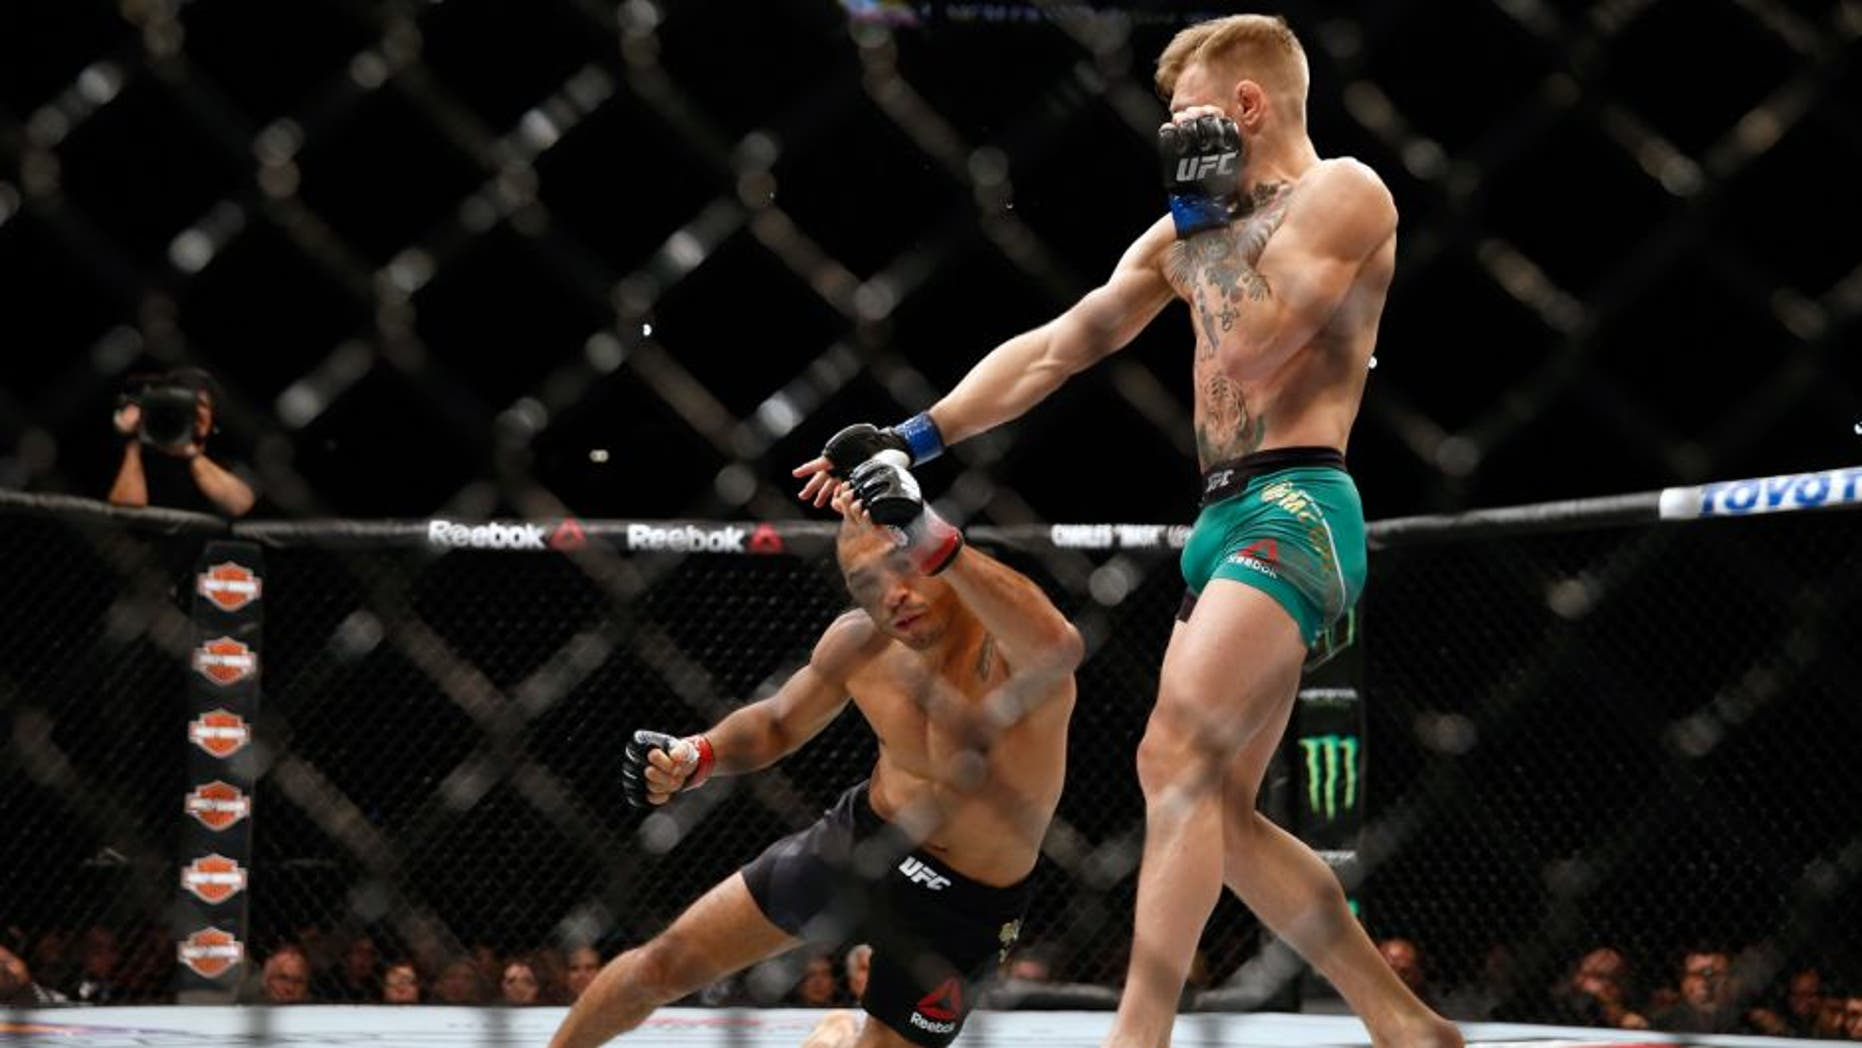 LAS VEGAS, NV - DECEMBER 12: (R-L) Conor McGregor of Ireland punches Jose Aldo of Brazil in their UFC featherweight championship bout during the UFC 194 event inside MGM Grand Garden Arena on December 12, 2015 in Las Vegas, Nevada. (Photo by Christian Petersen/Zuffa LLC/Zuffa LLC via Getty Images)